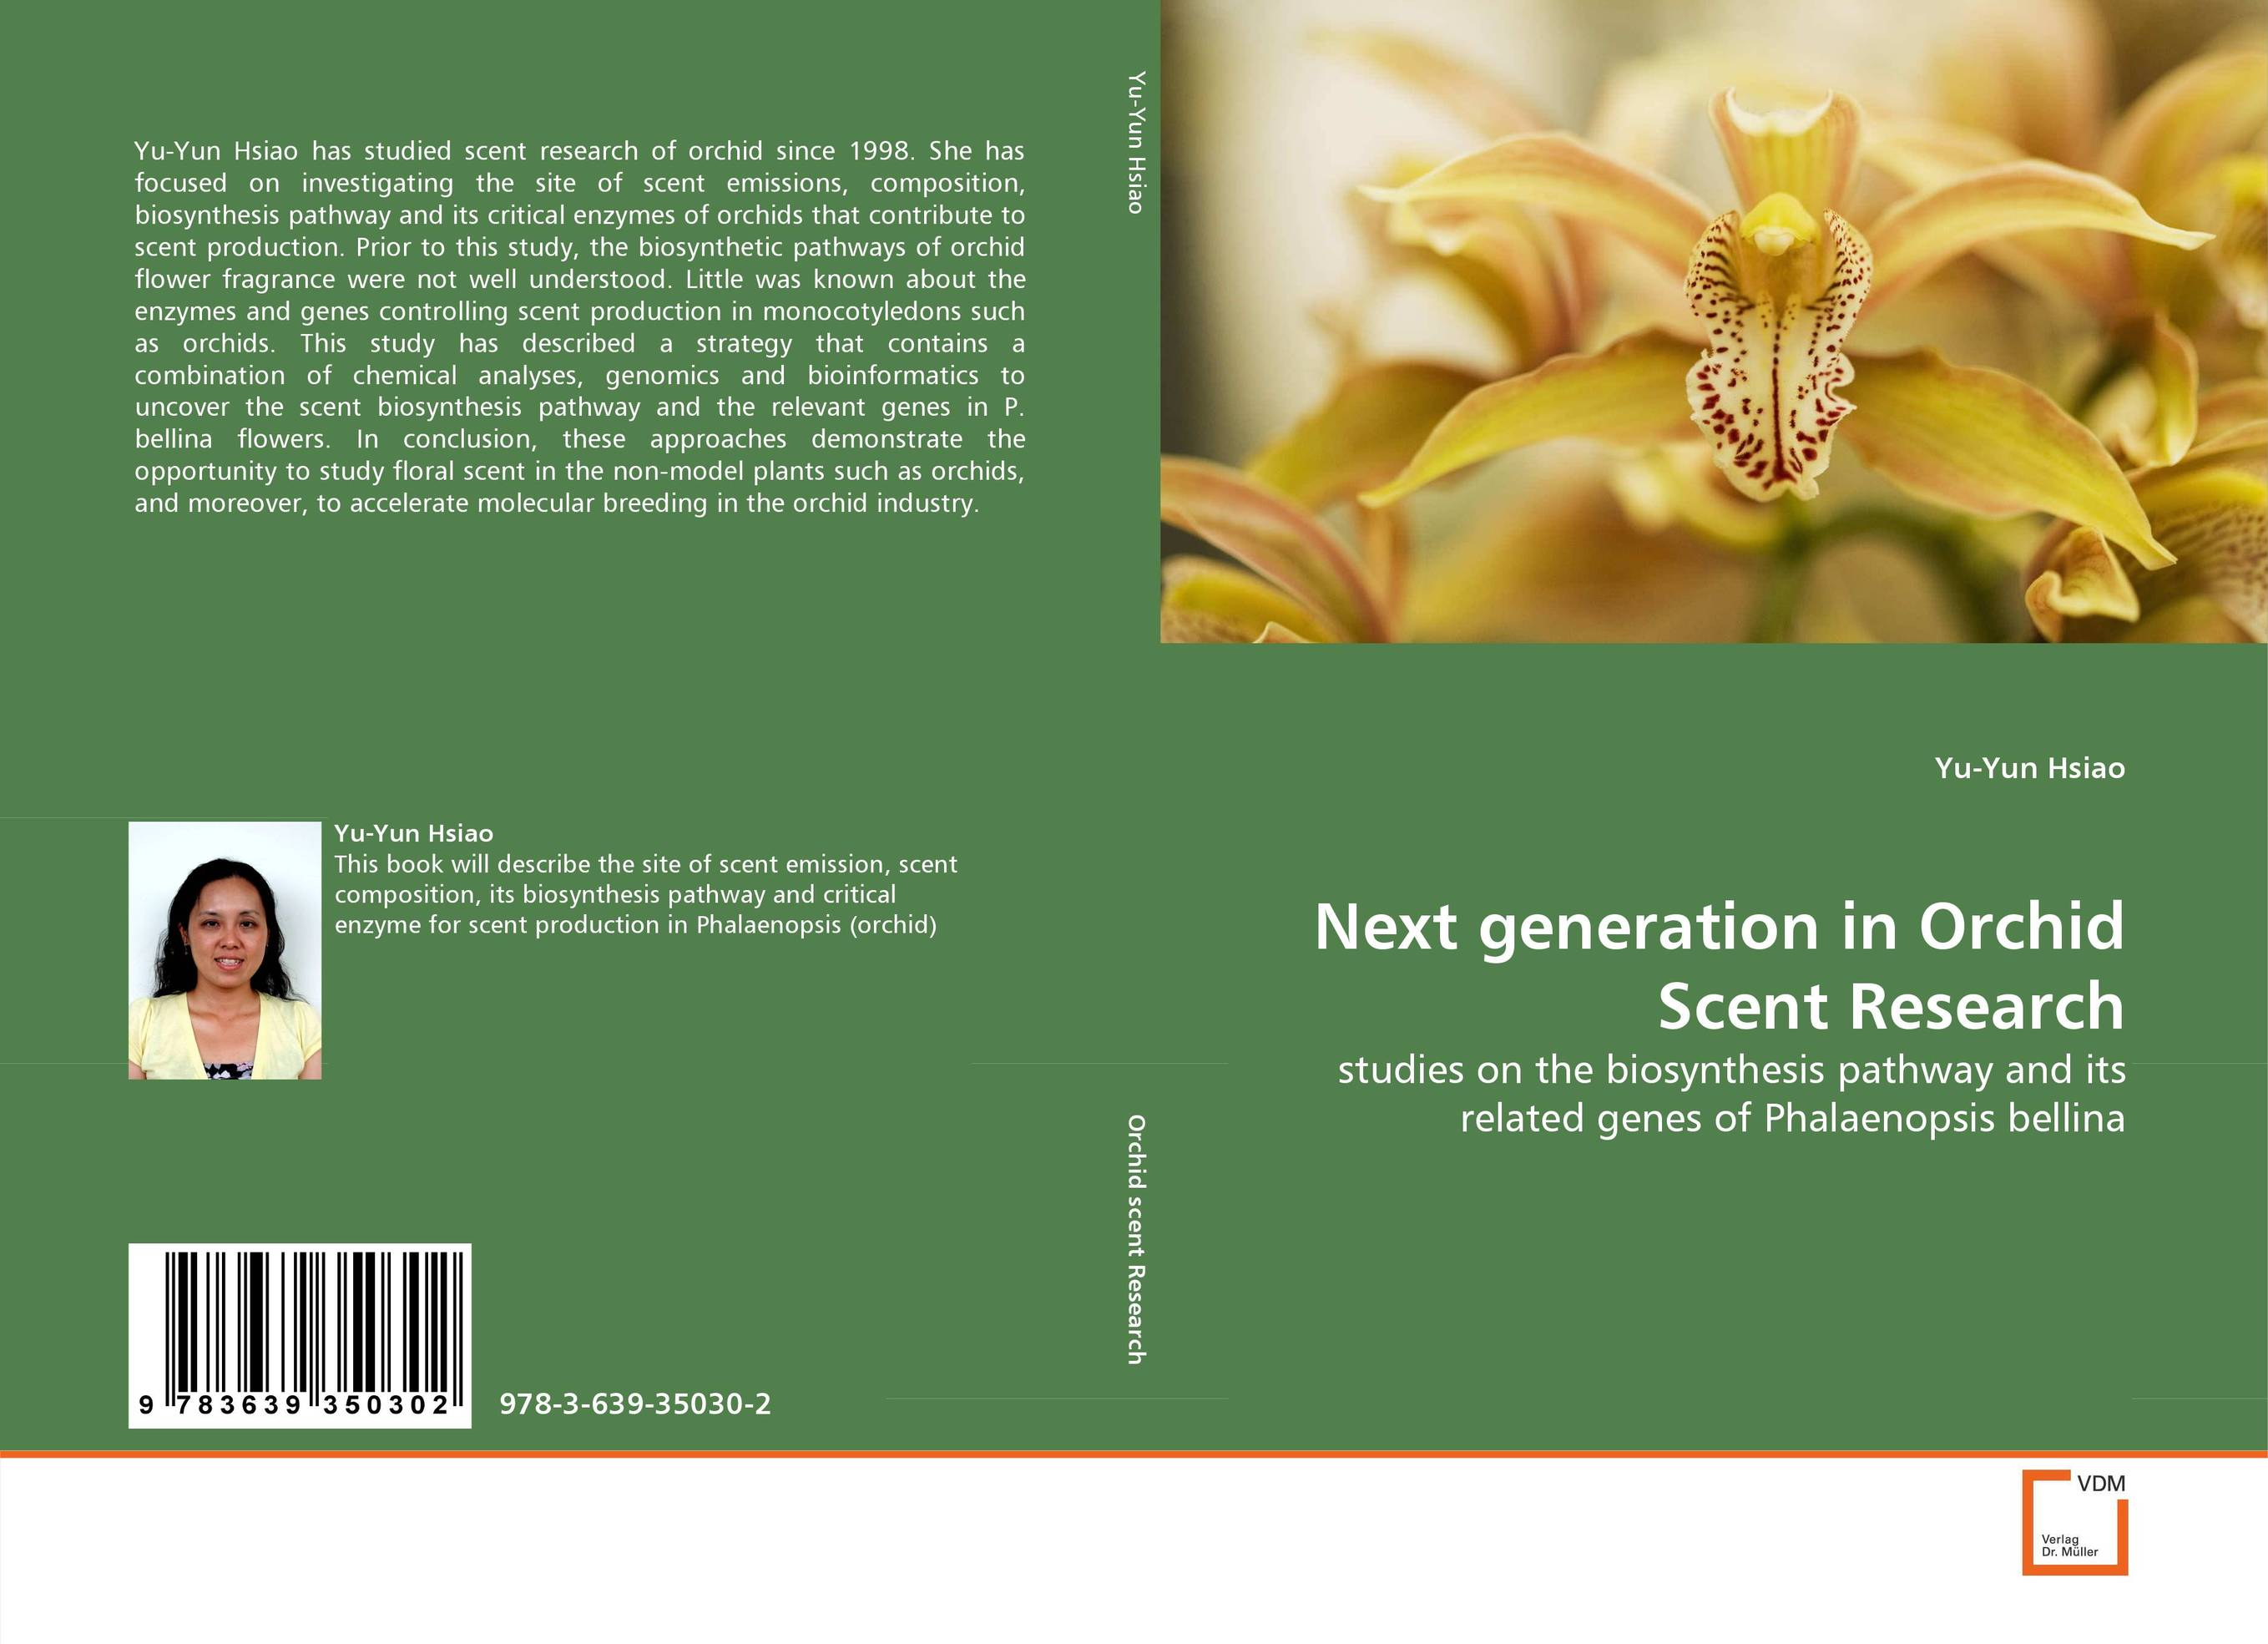 Next generation in Orchid Scent Research generation next